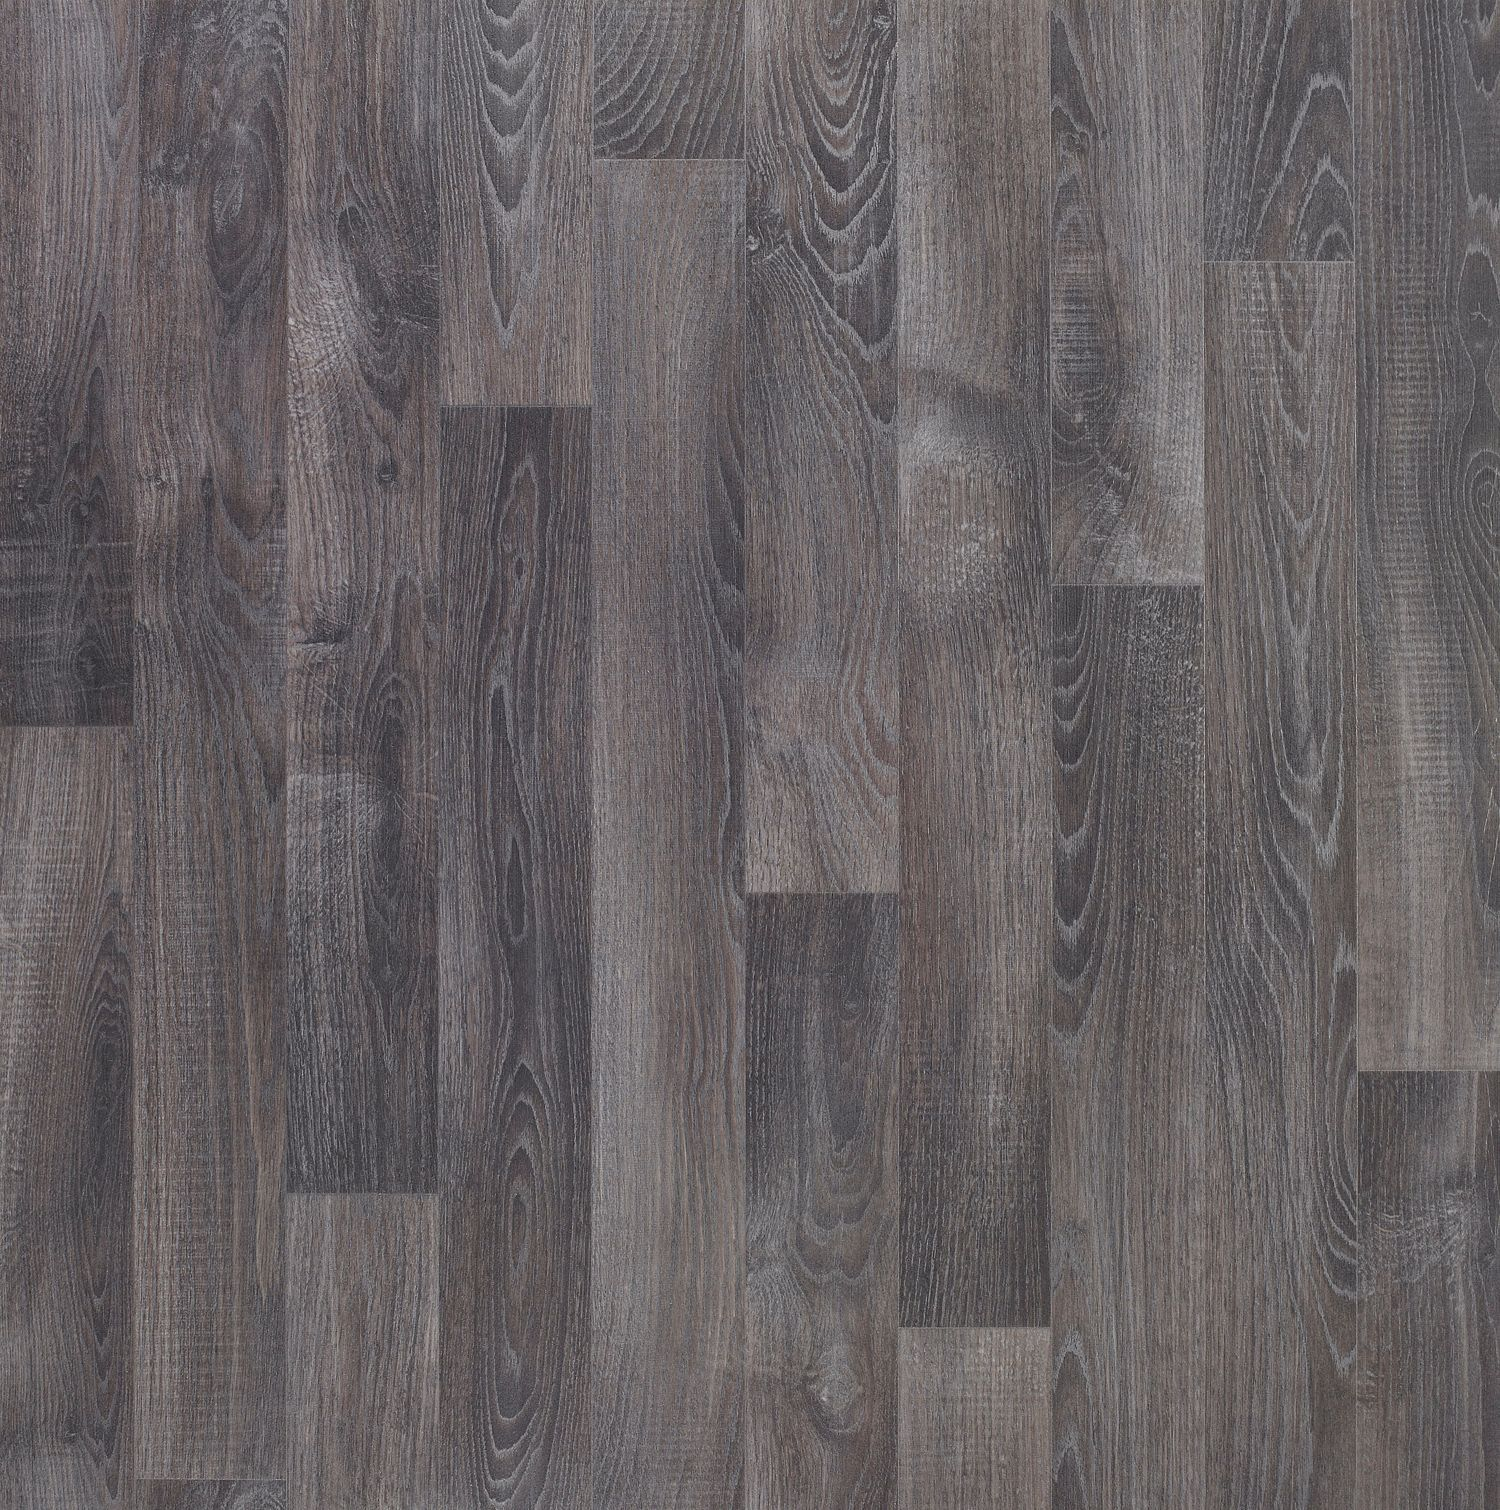 Dark Grey Oak Effect Vinyl Flooring 4 M 178 Departments